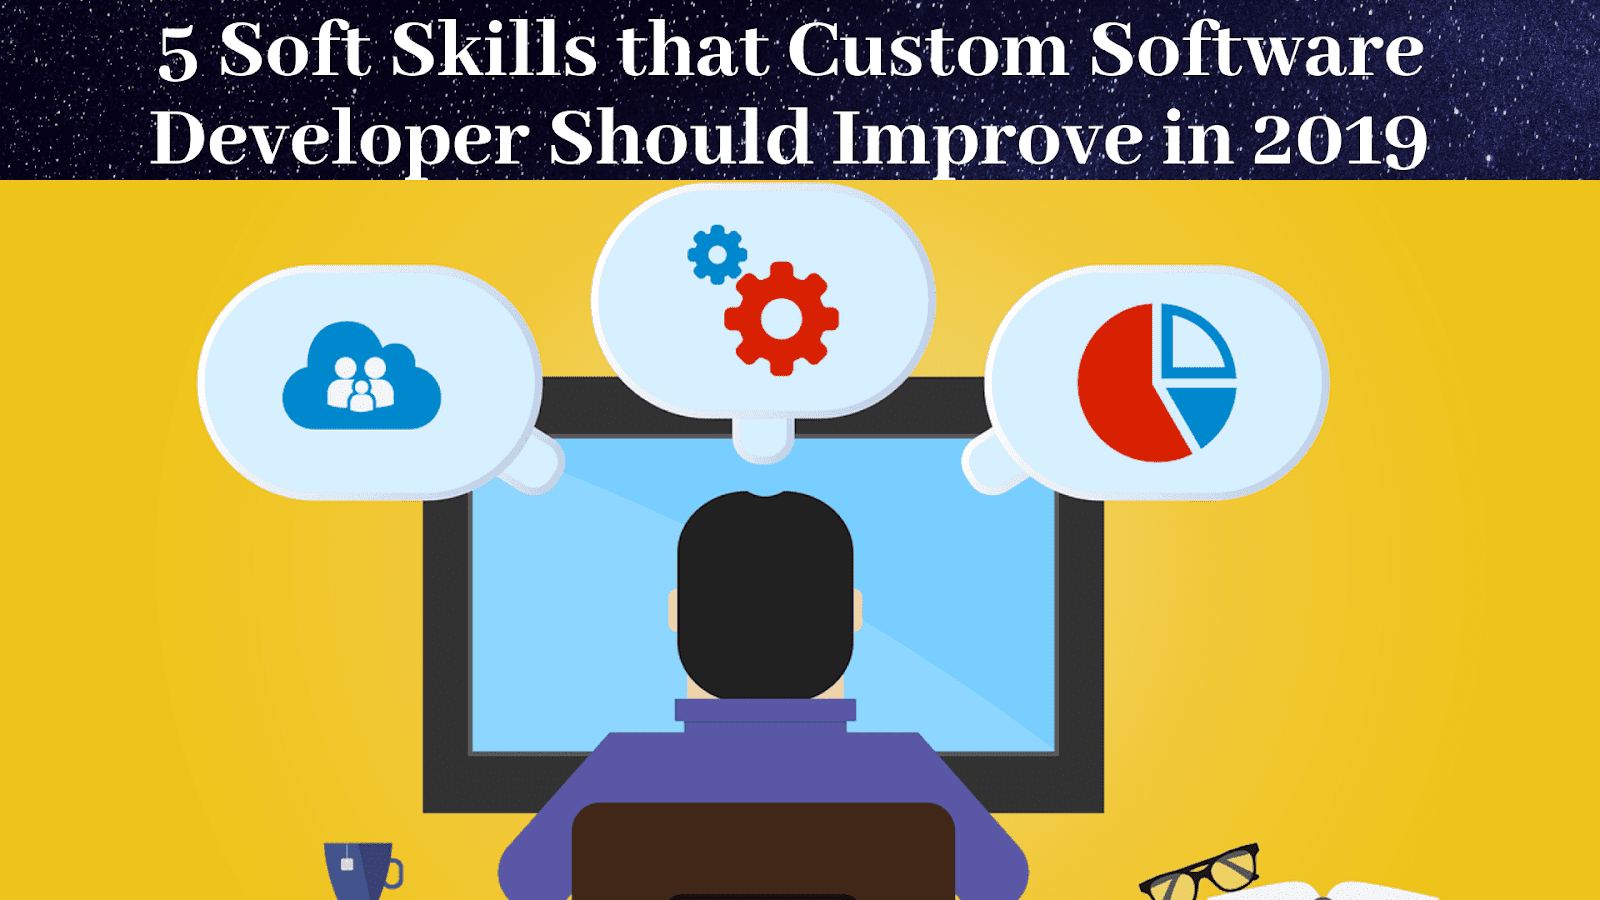 Custom Software Developer Soft Skills